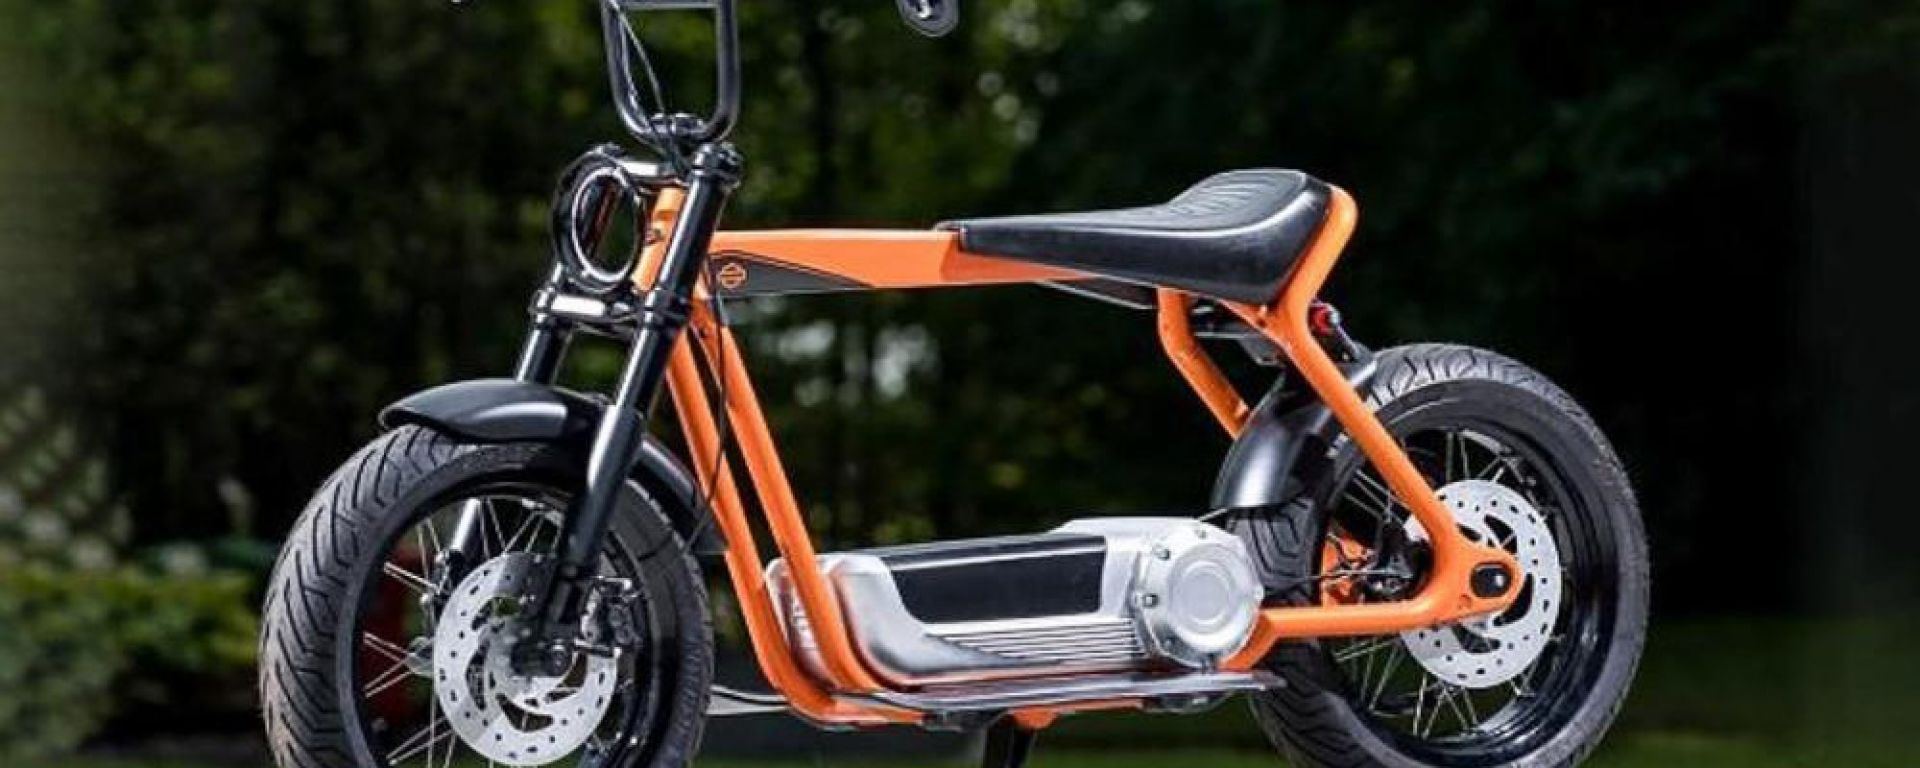 Harley-Davidson City Speedster: lo scooter elettrico